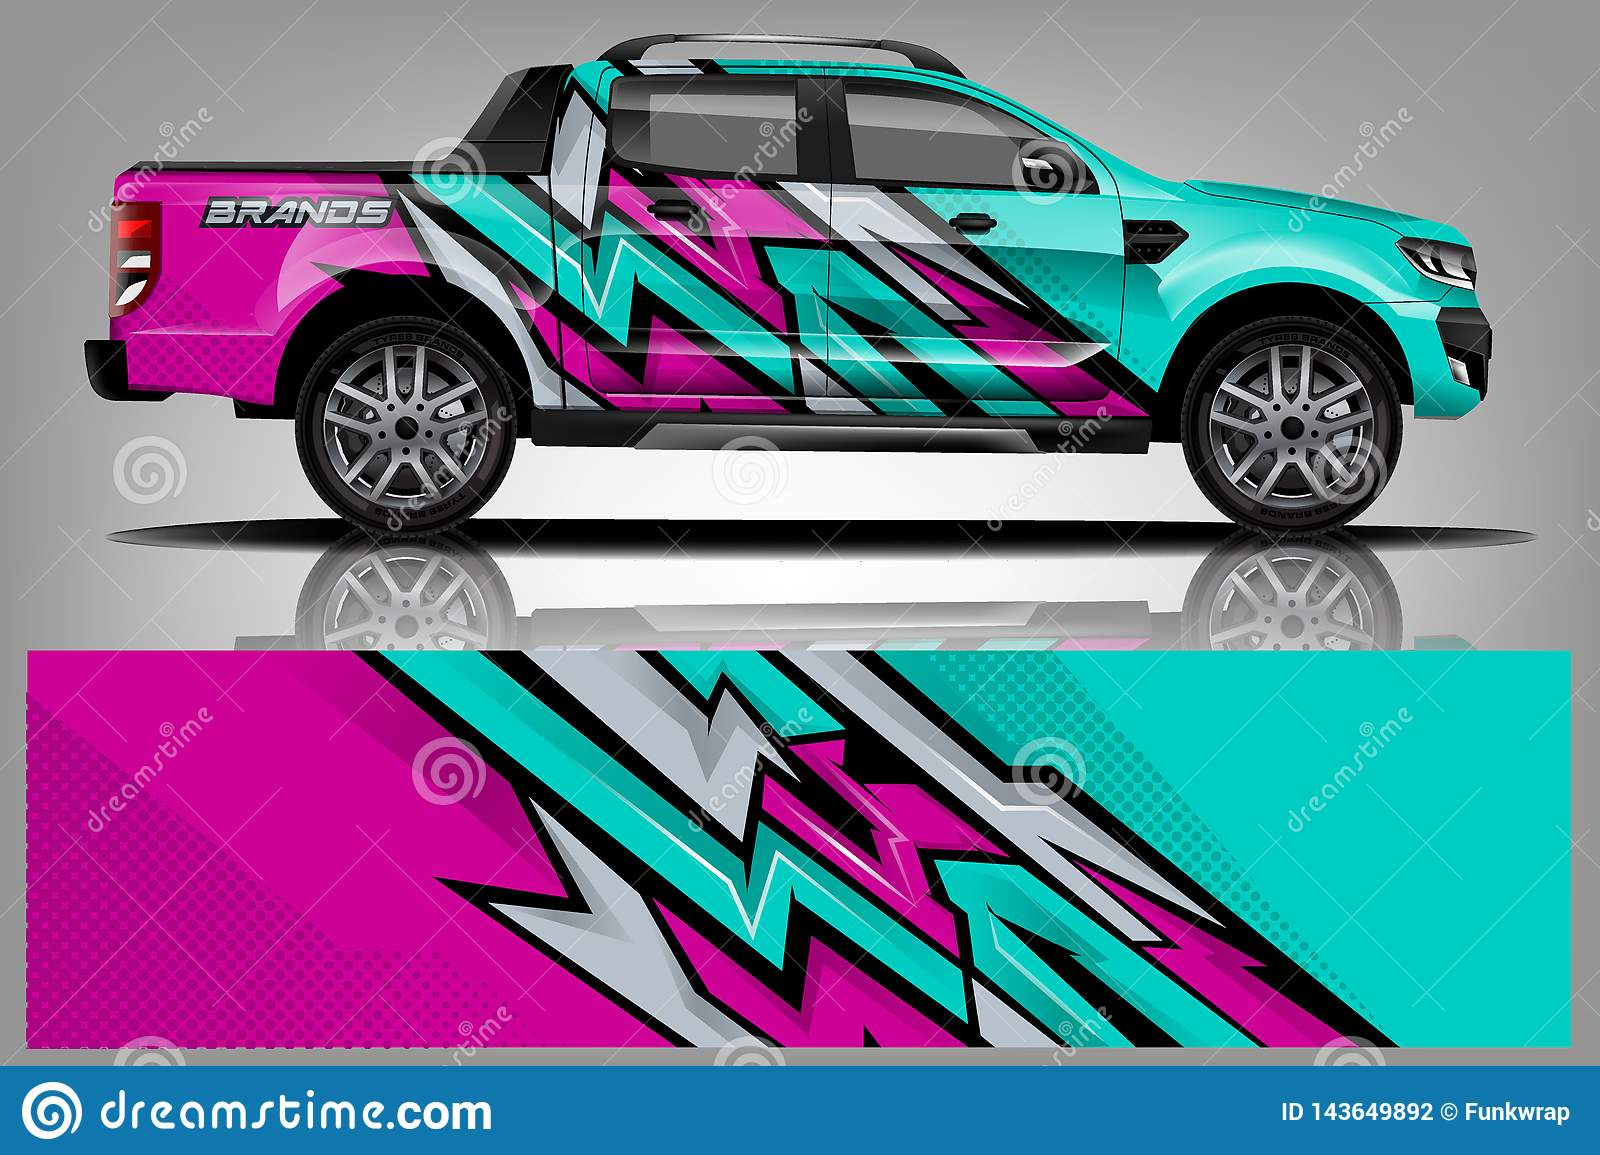 Car Decal Wrap Design Vector Graphic Abstract Stripe Racing Background Kit Designs For Vehicle Race Car Rally Adventure And Li Stock Vector Illustration Of Geometric Branding 143649892